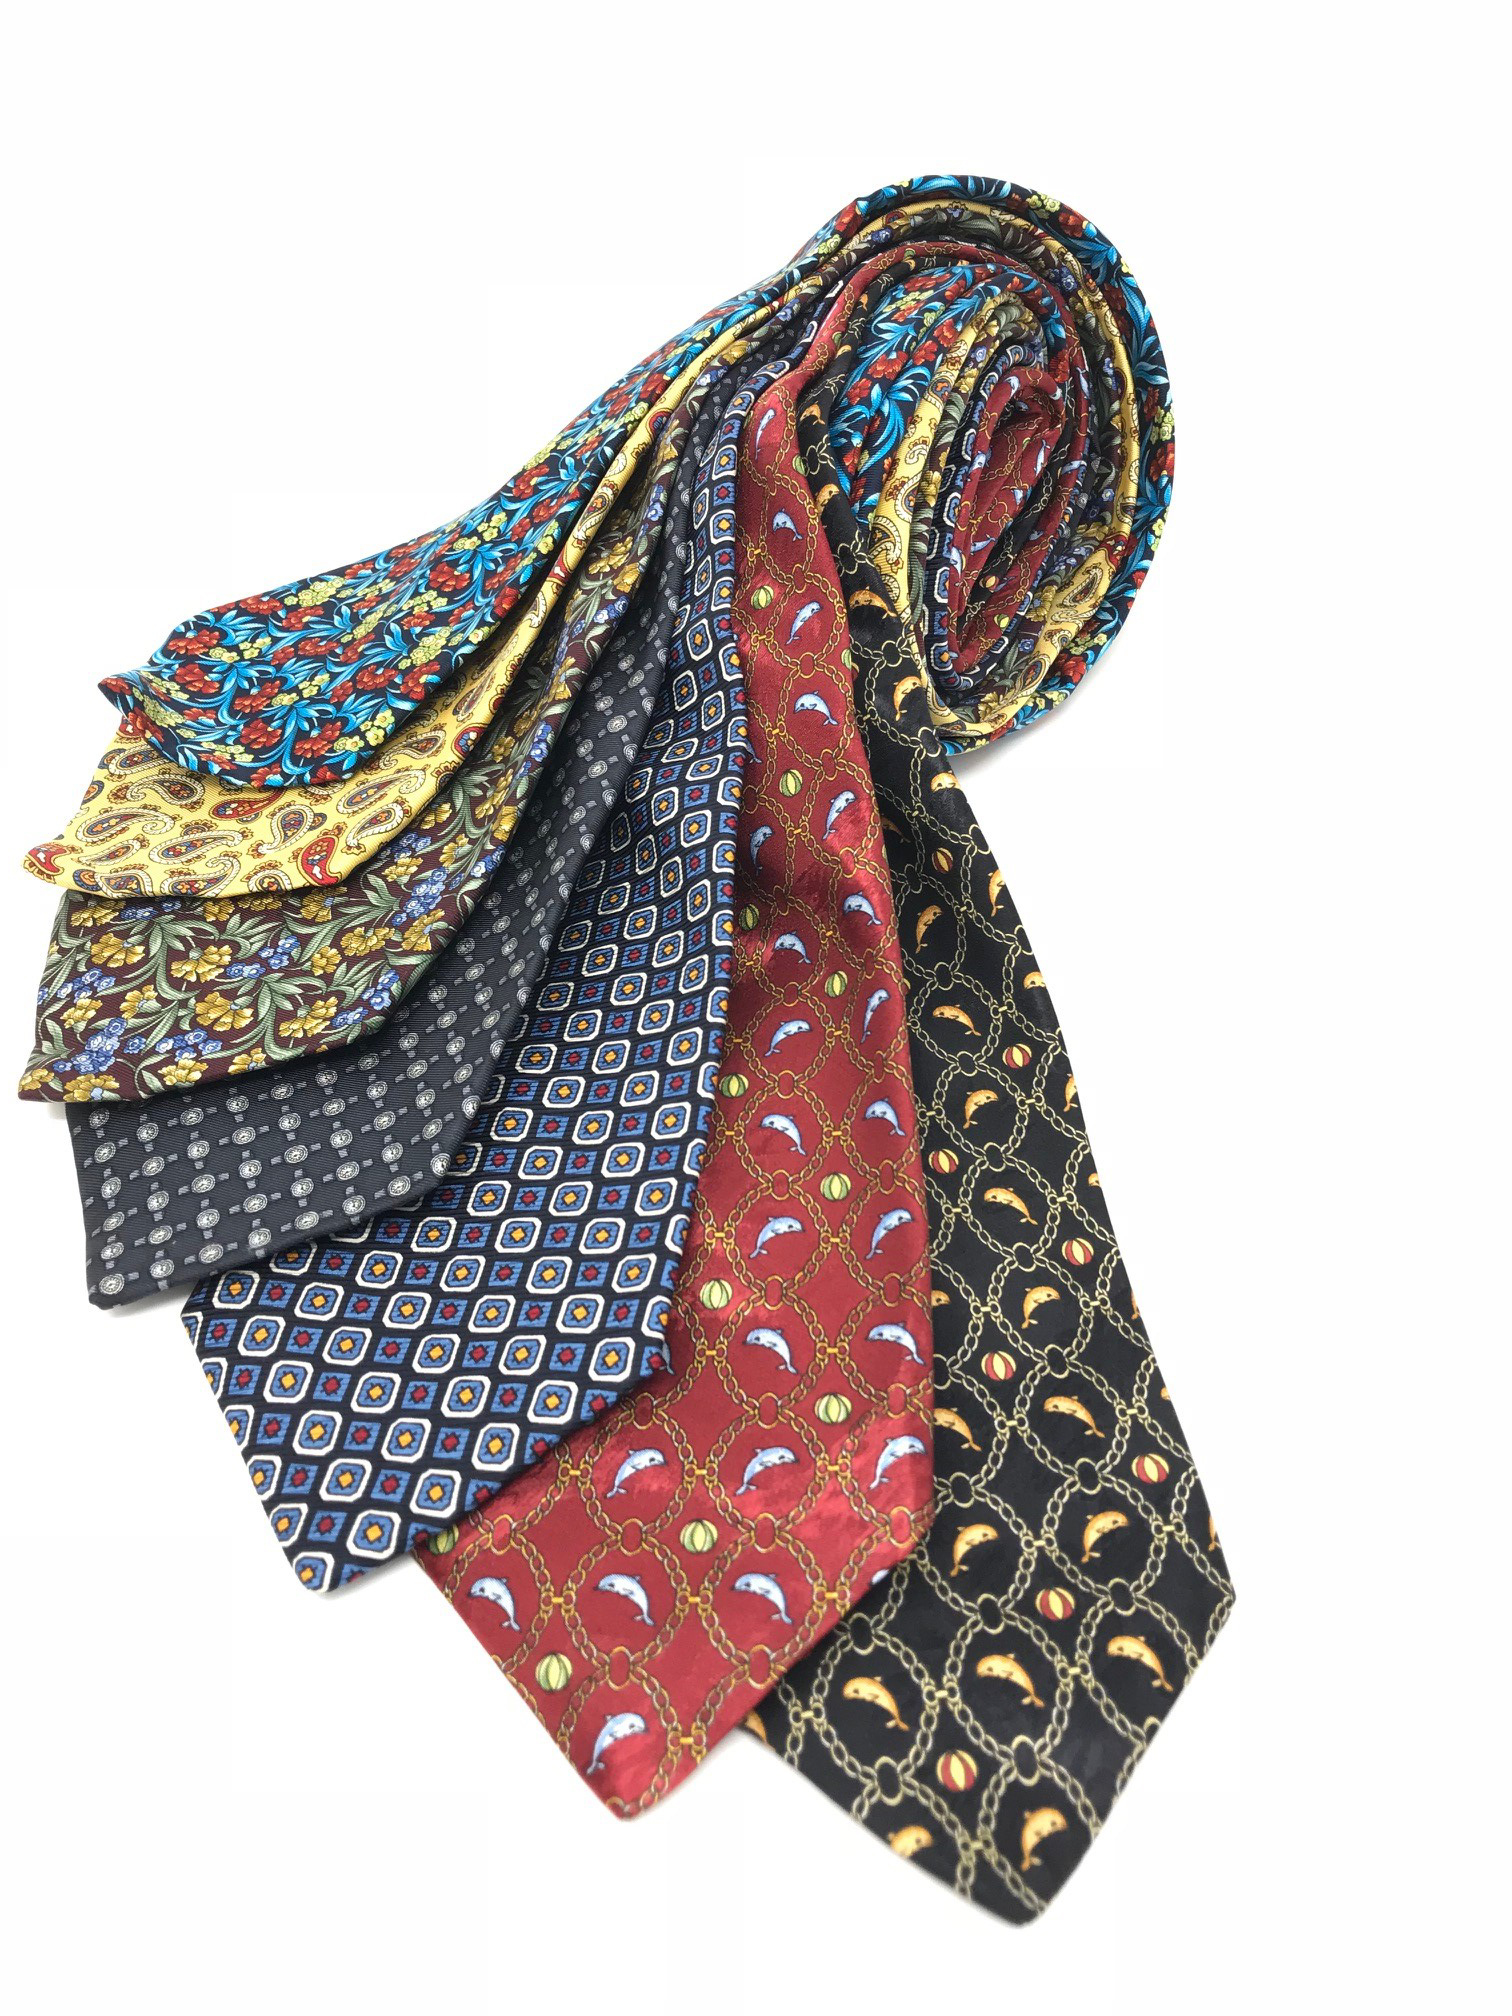 Cavenagh of London 7Piece 100% Pure Silk Ties Made in UK (517D)RRP£139.99